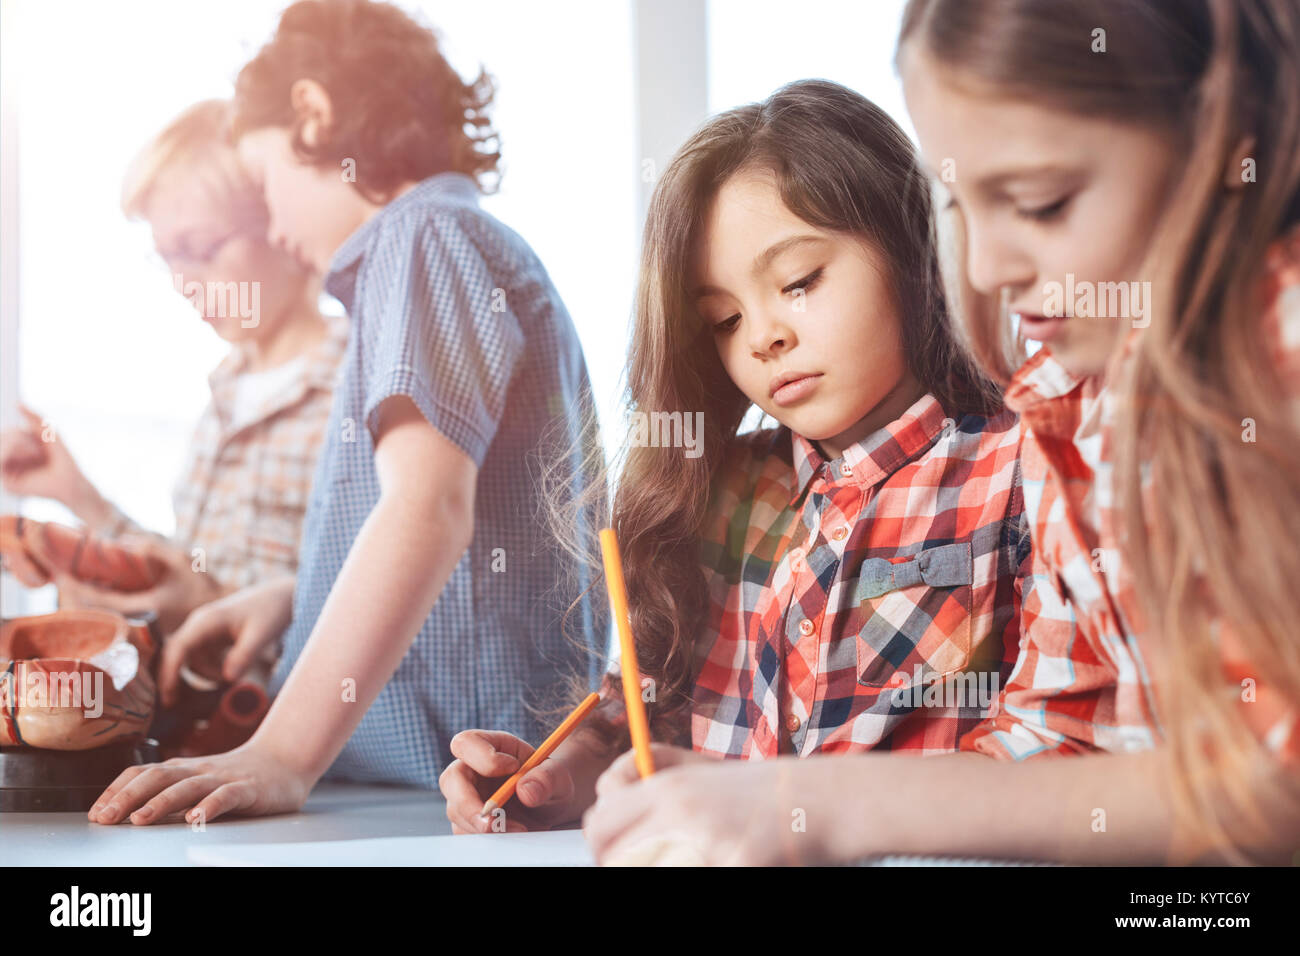 Serious Approach Ambitious Adorable Lovely Kids Studying Human